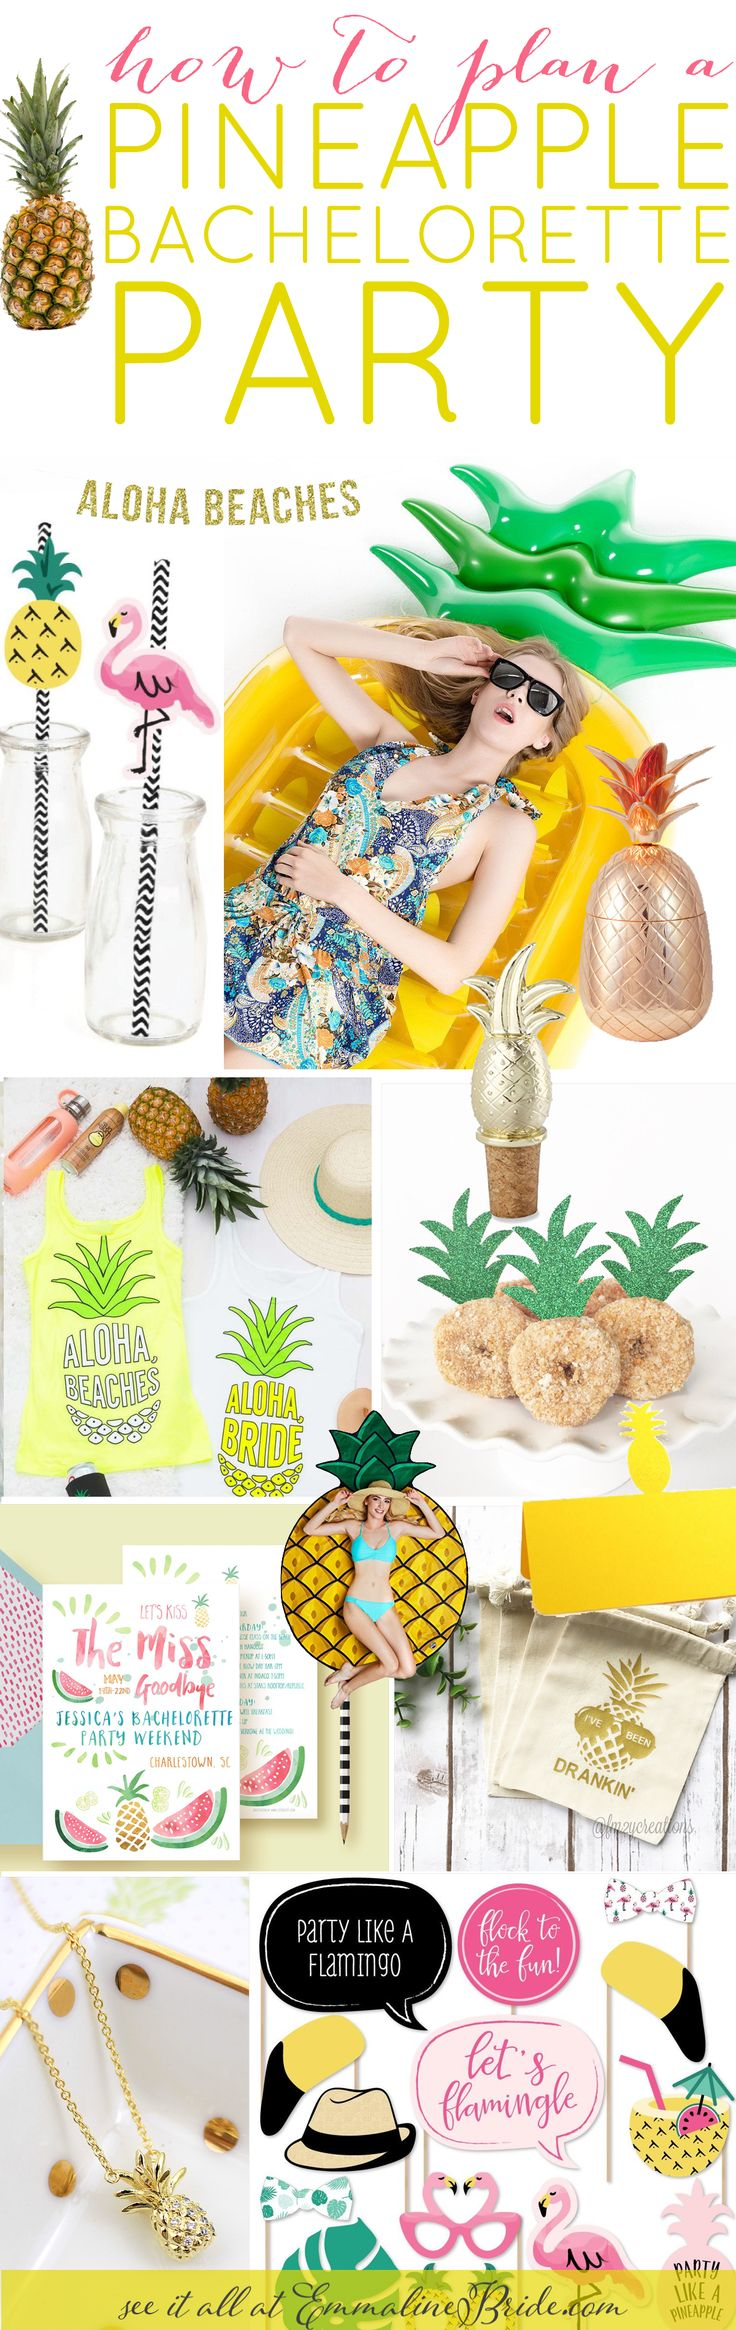 How to Plan an Awesome Pineapple Themed Bachelorette Party